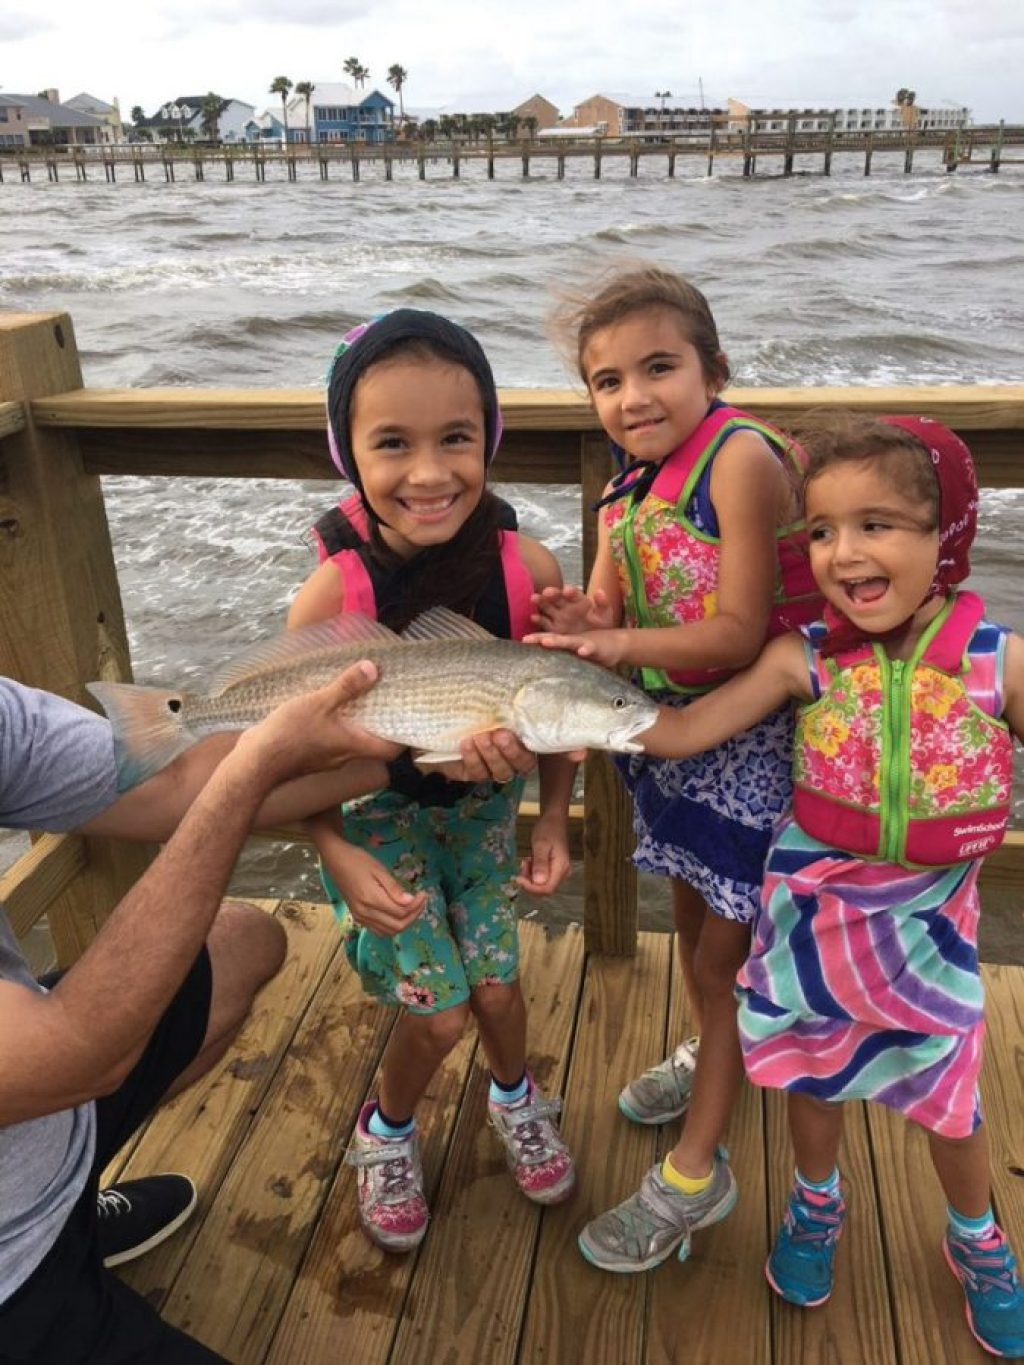 Nine-year-old Isabella Rivera with the biggest fish of her life, 22-inch redfish caught in Aransas Bay on a fishing pier using live shrimp. The fish was released. Joining her were her sisters Abryanna (seven) and Katalyna (four). Dad Mark held the fish.